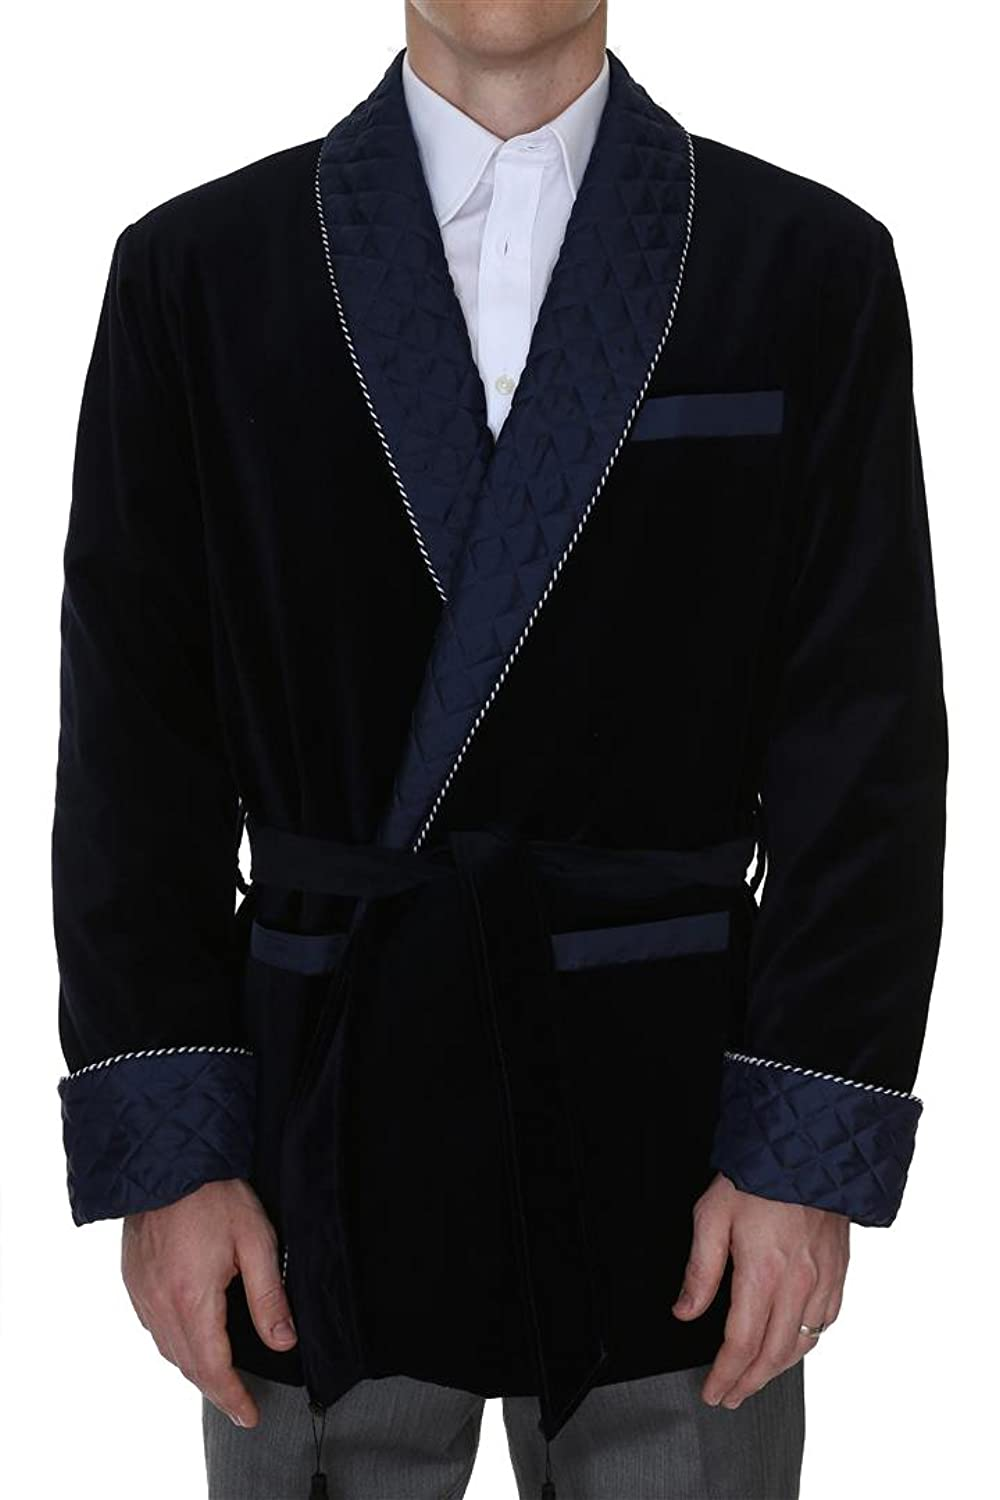 1900s Edwardian Men's Suits and Coats Mens Smoking Jacket Bartholomew Navy $399.95 AT vintagedancer.com